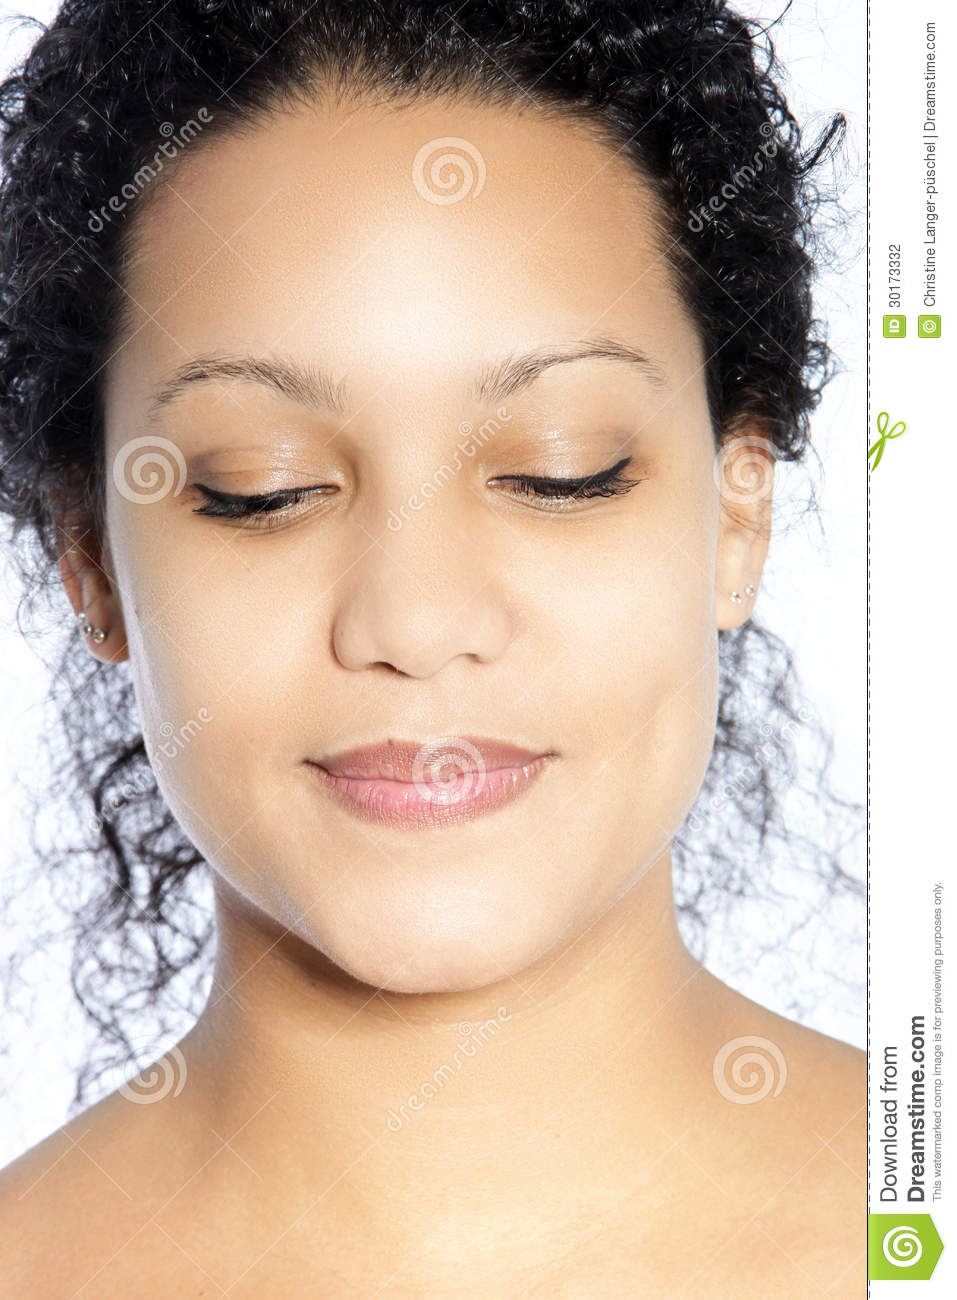 Portrait Of Smiling Woman With Eyes Closed Stock Photo ...